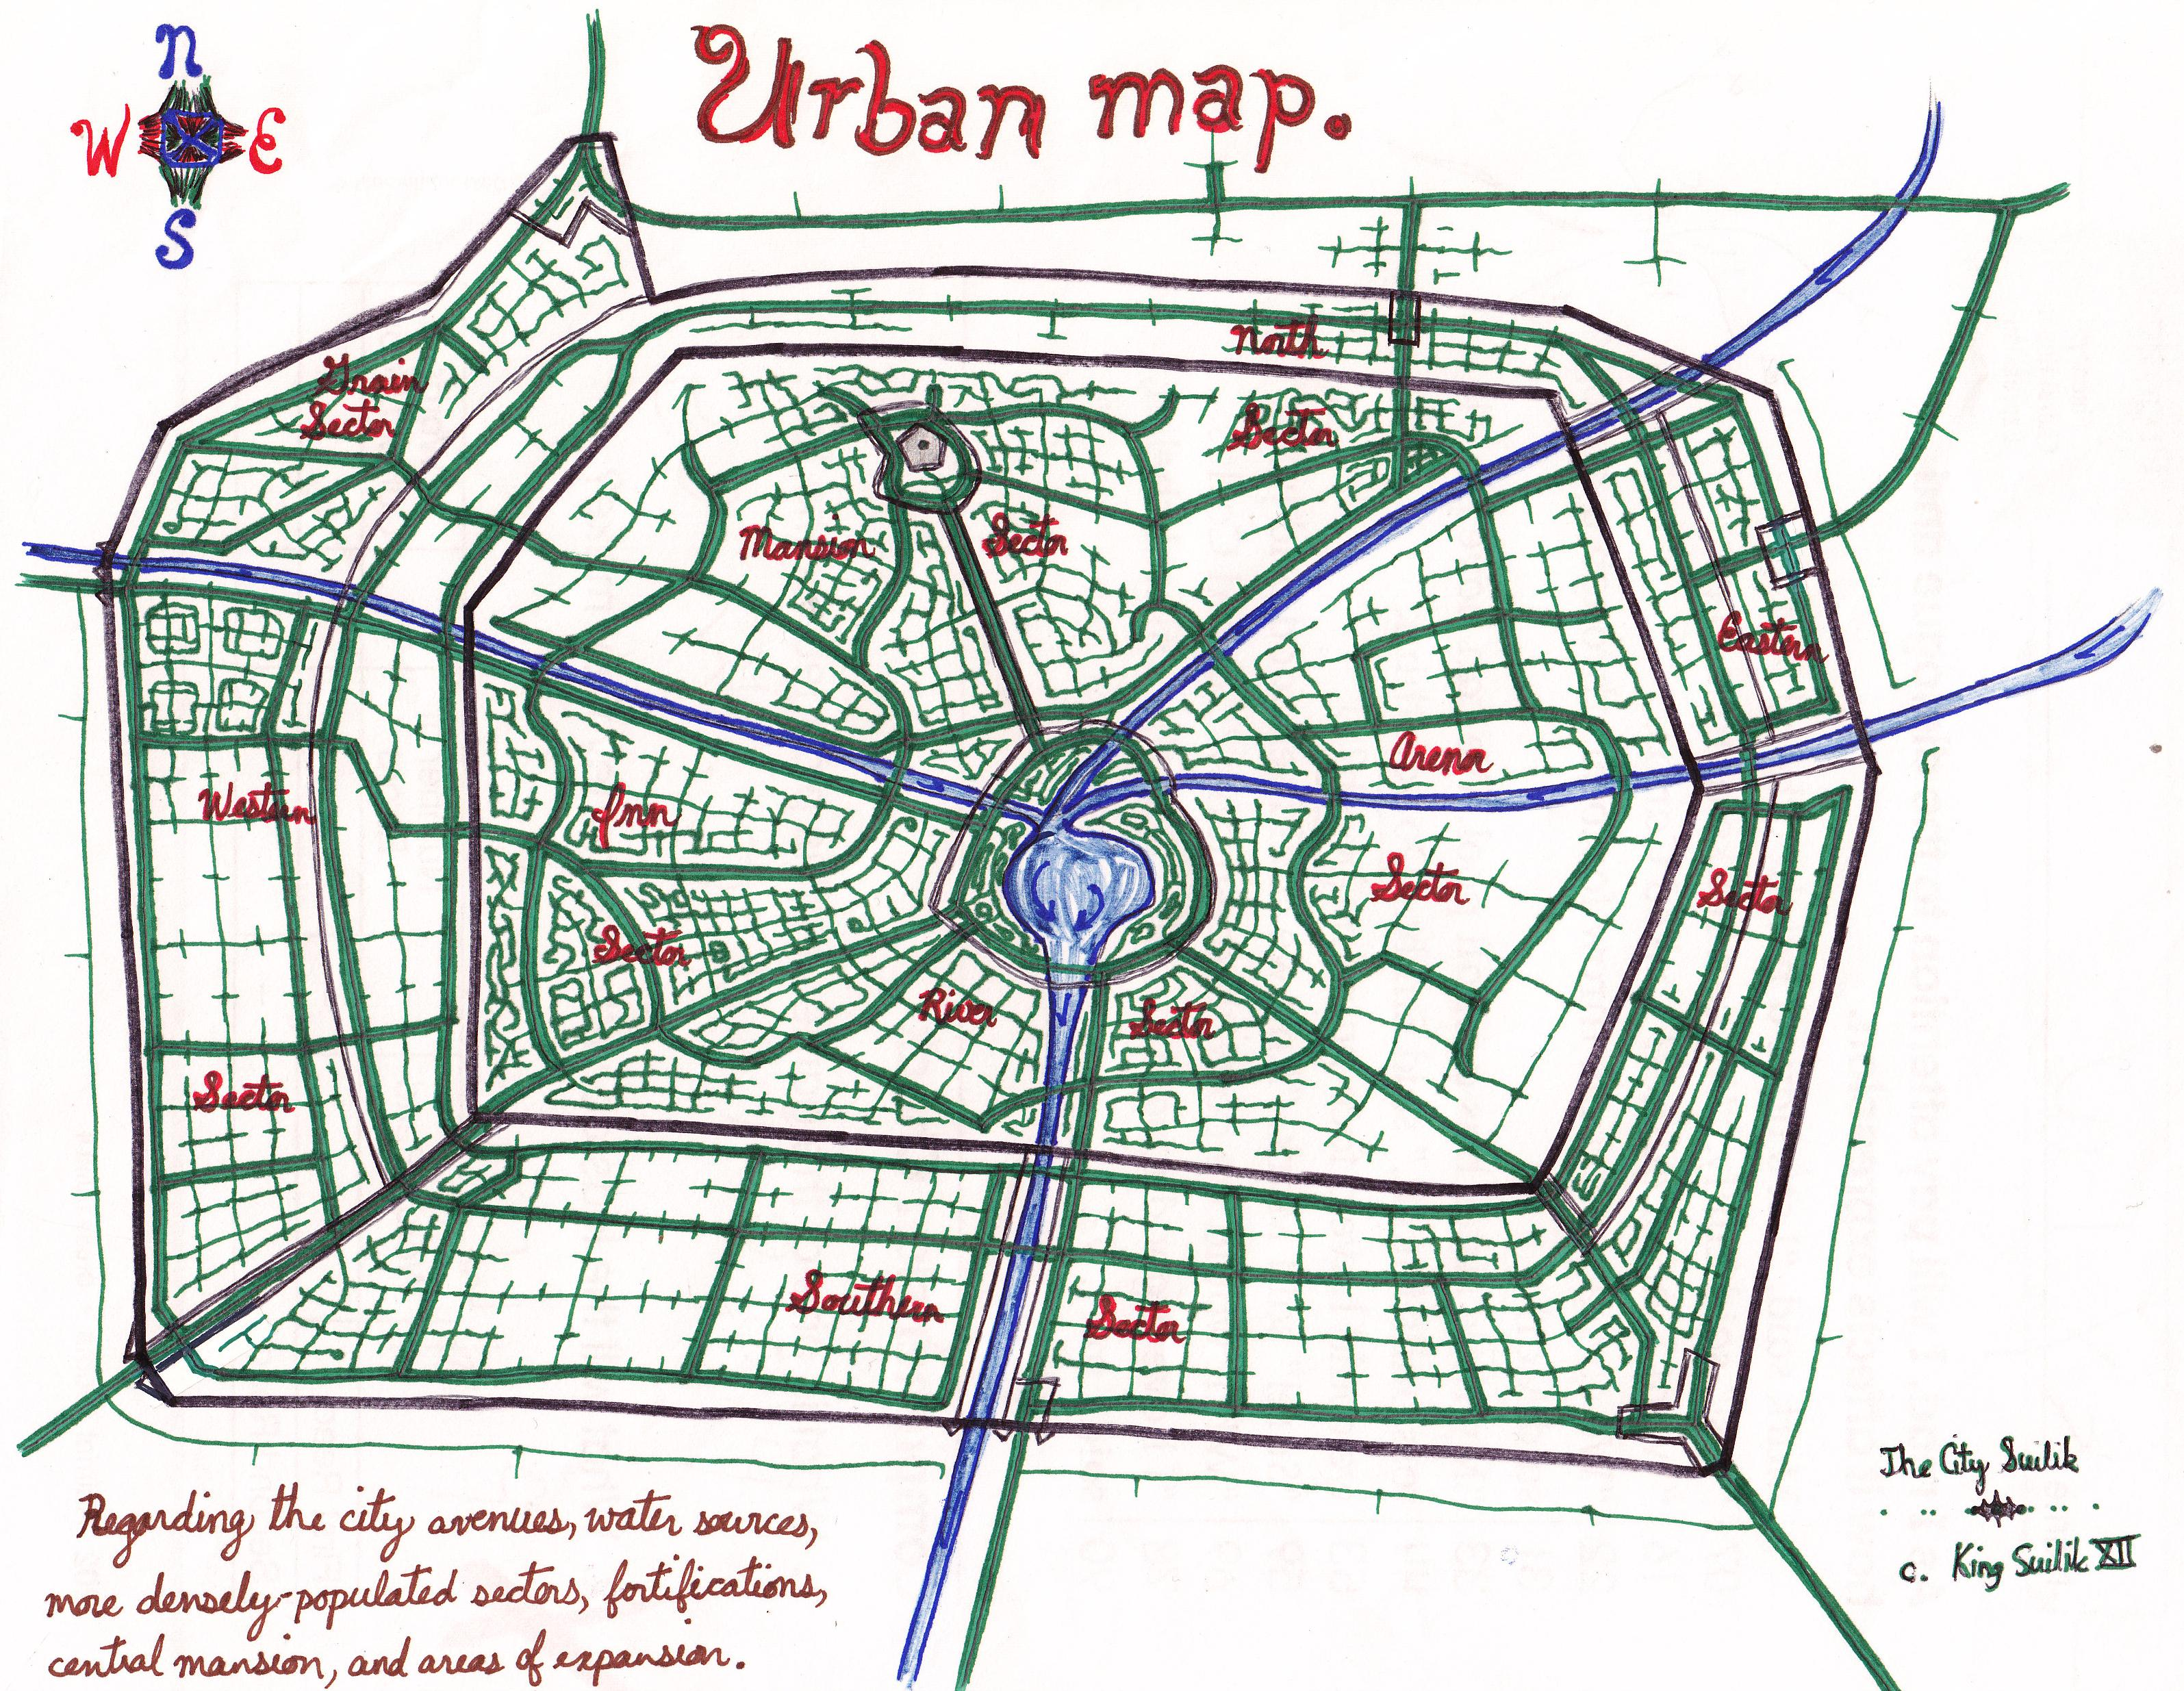 Suilik City Map 01 (S 12)